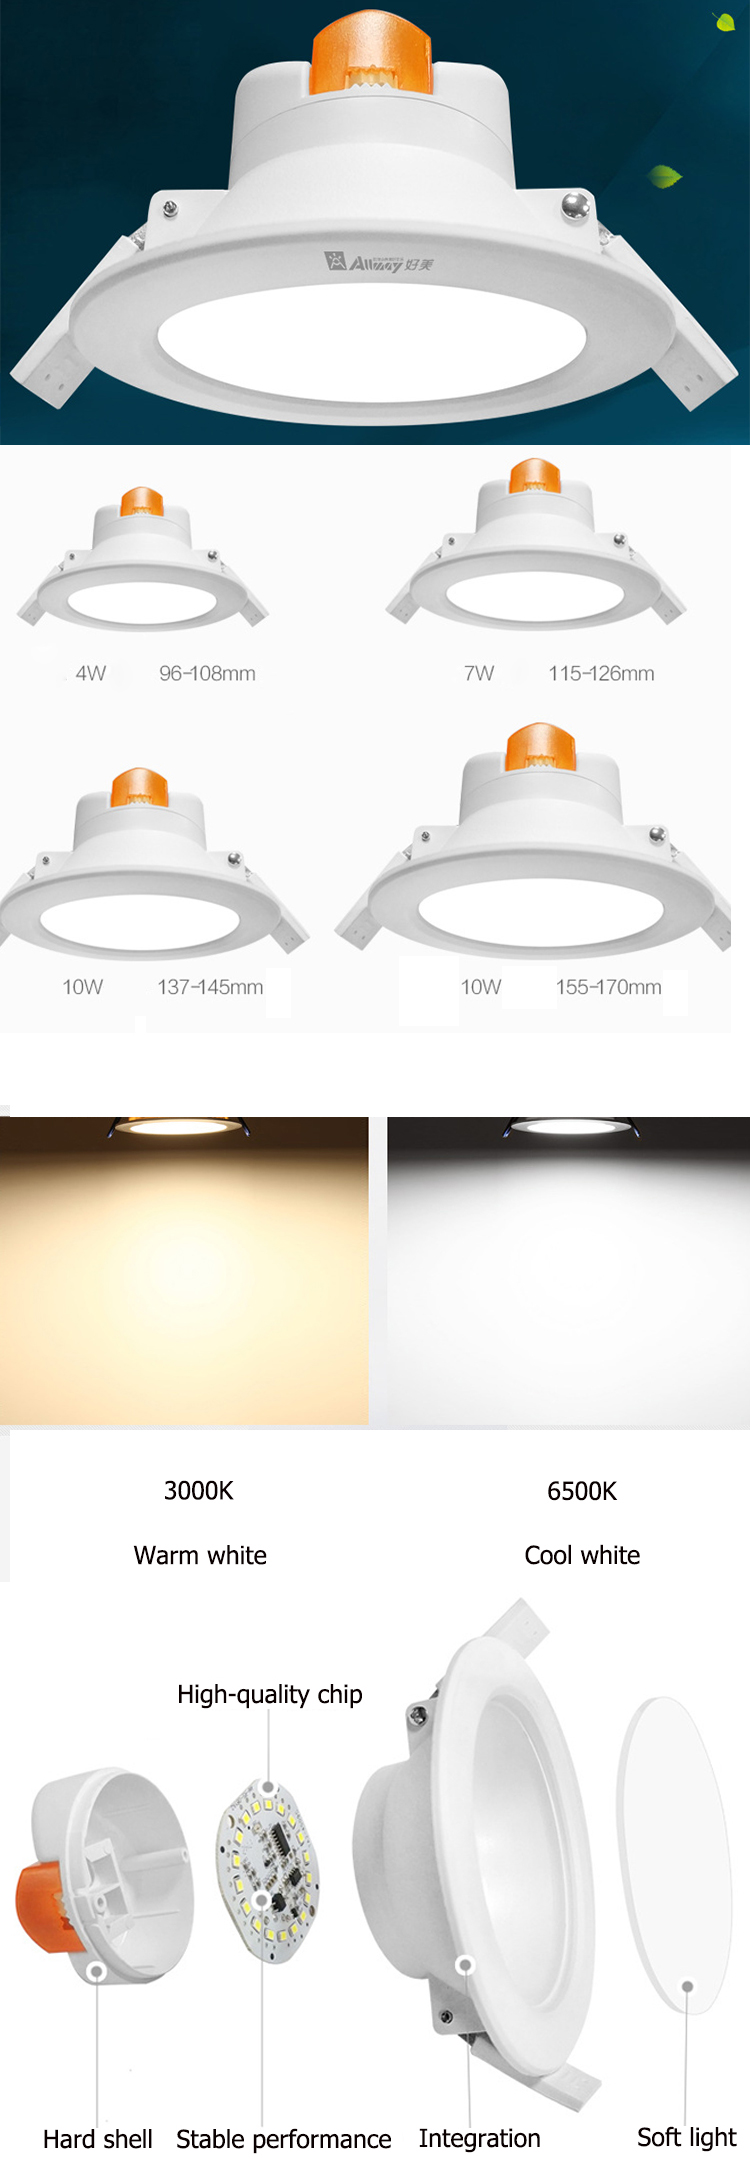 6inch 10W Cutout 170mm On / Off Dimming Sensor Equipped LED Recessed Downlight with Microwave Motion Sensor